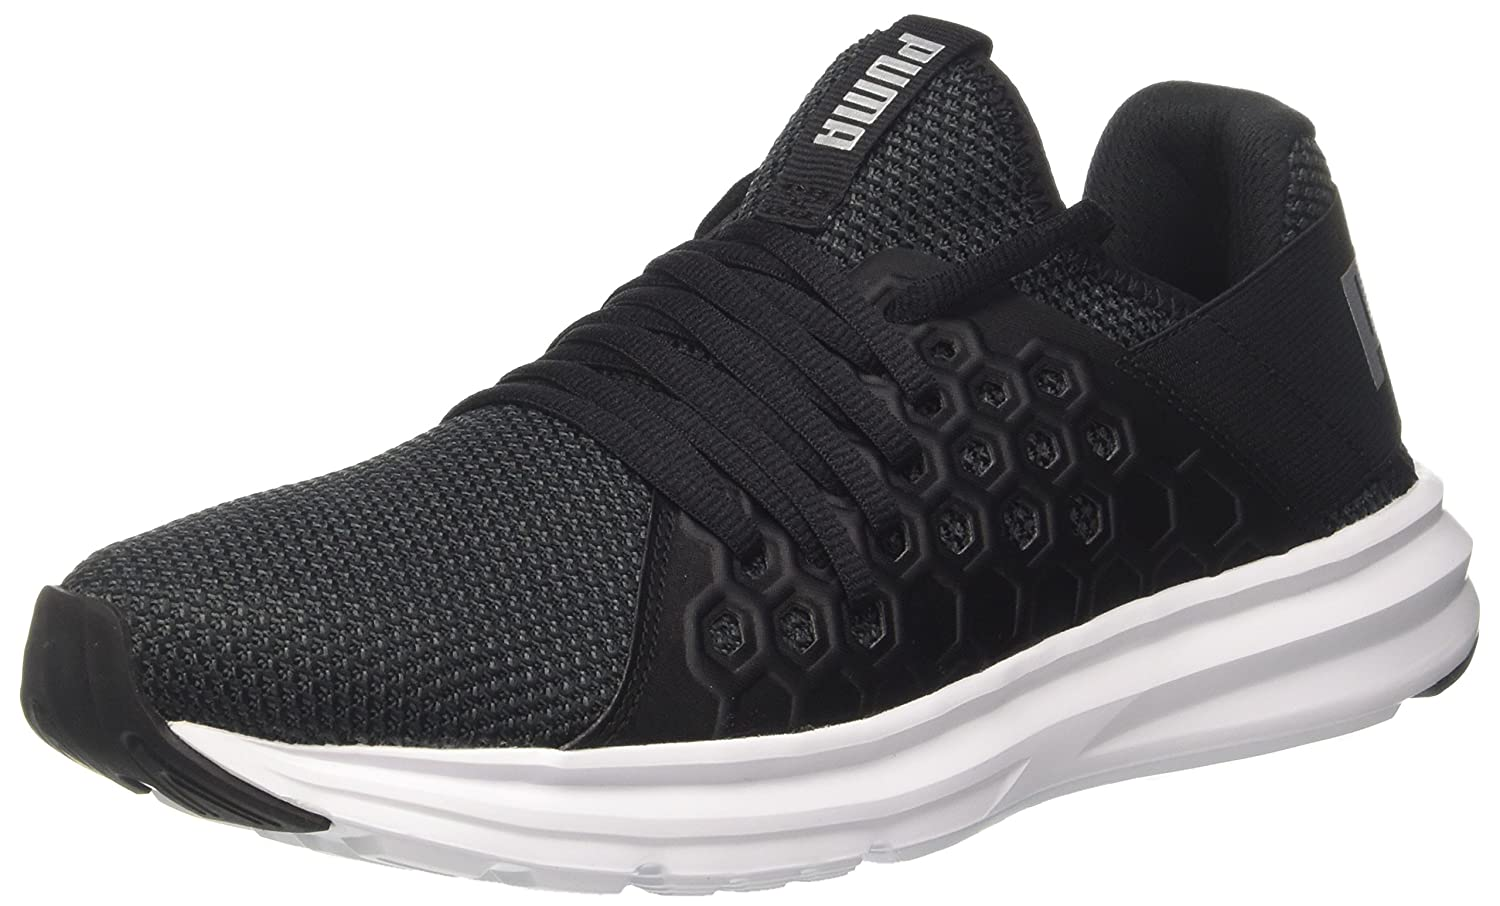 be8a8c269008 Puma Men s Enzo Nf Black Multisport Training Shoes-12 UK India (47 EU)  (19093201)  Buy Online at Low Prices in India - Amazon.in